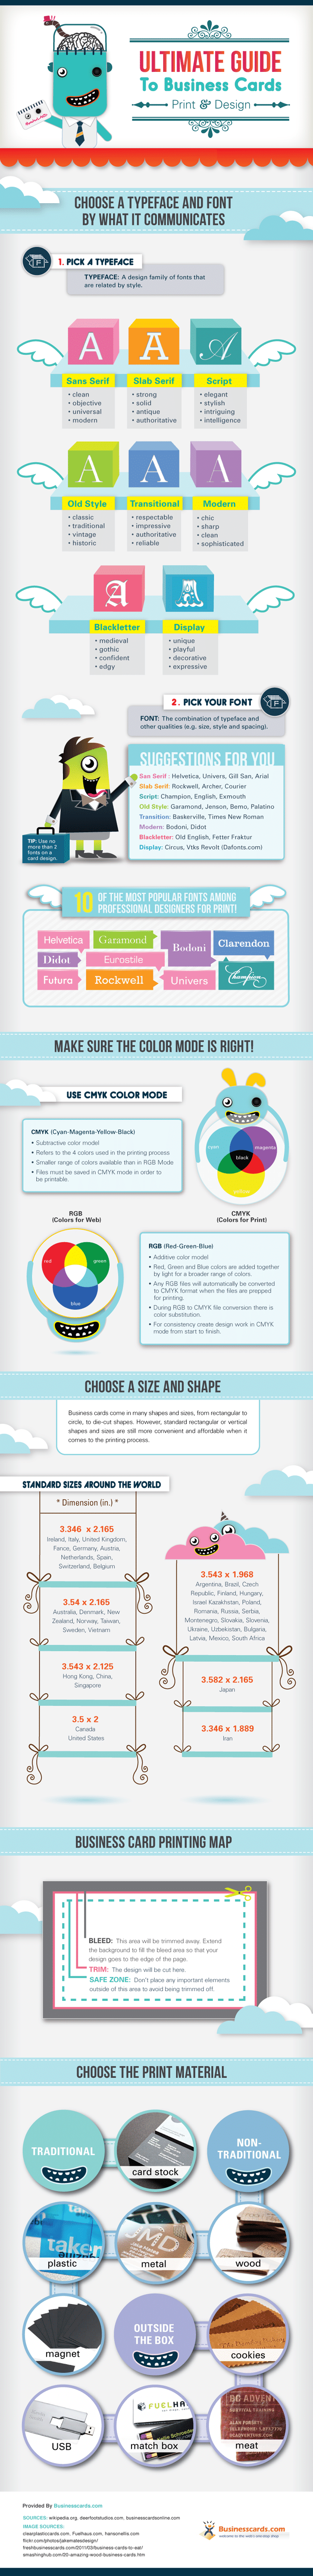 The Ultimate Guide To Business Card Design [Infographic]